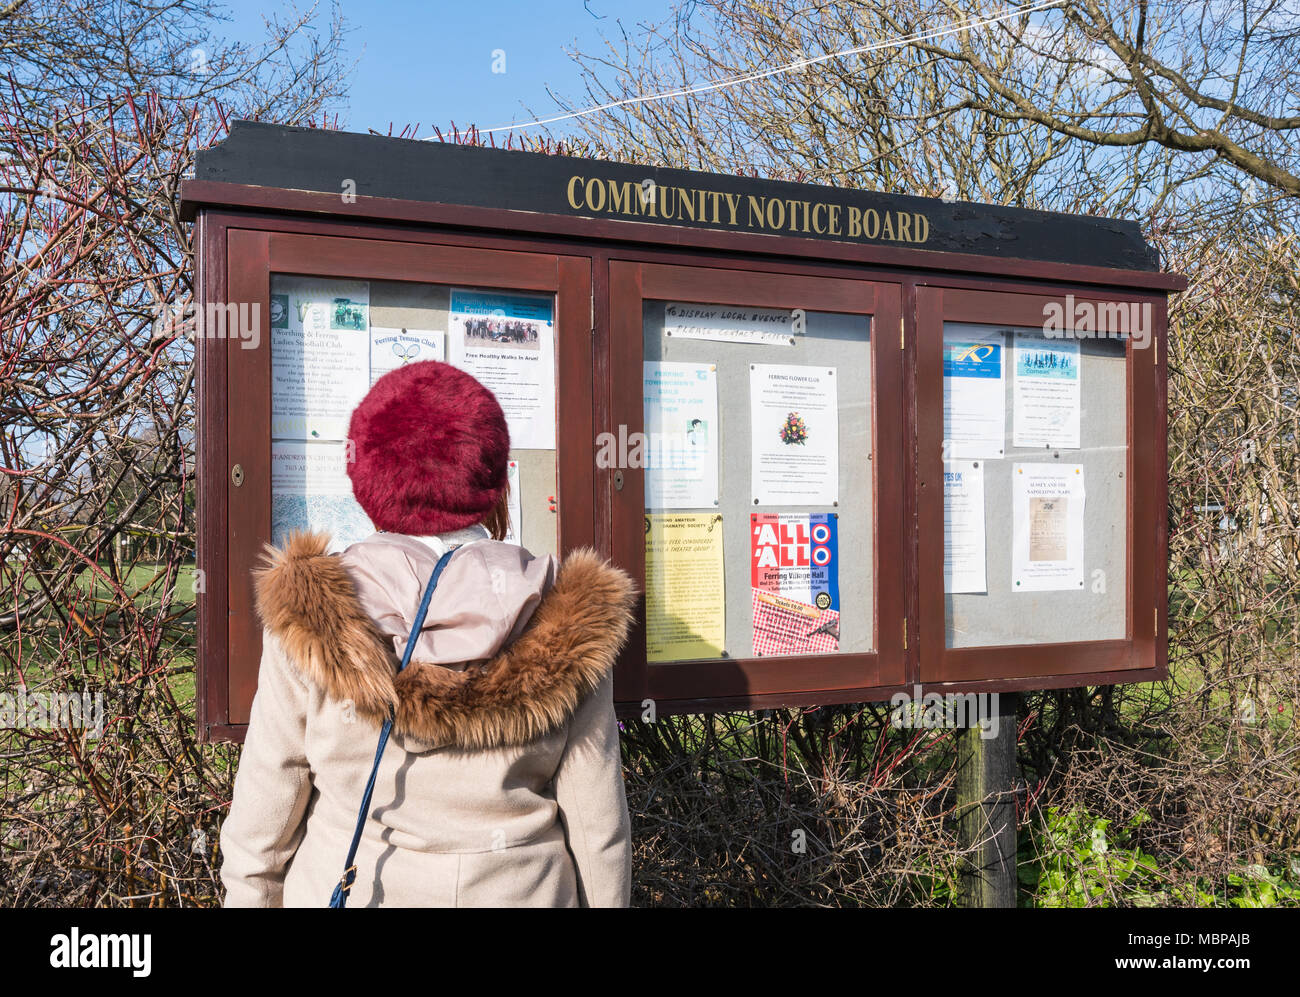 Woman reading a Community Notice Board in Ferring, West Sussex, England, UK. Lady looking at a Community Noticeboard in a British town. - Stock Image